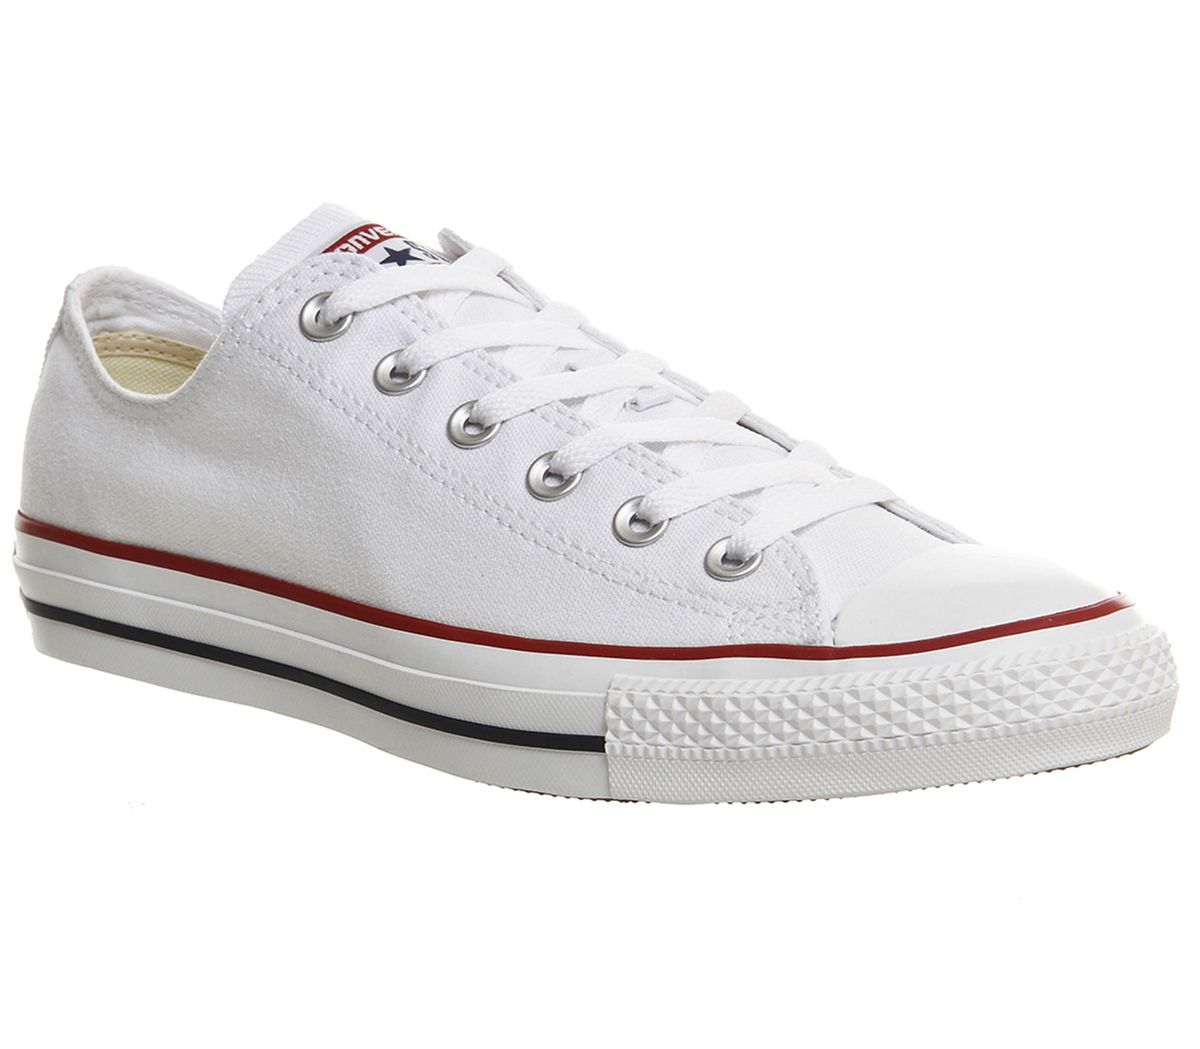 c8e5d95dfa Converse All Star Low White Canvas - Unisex Sports